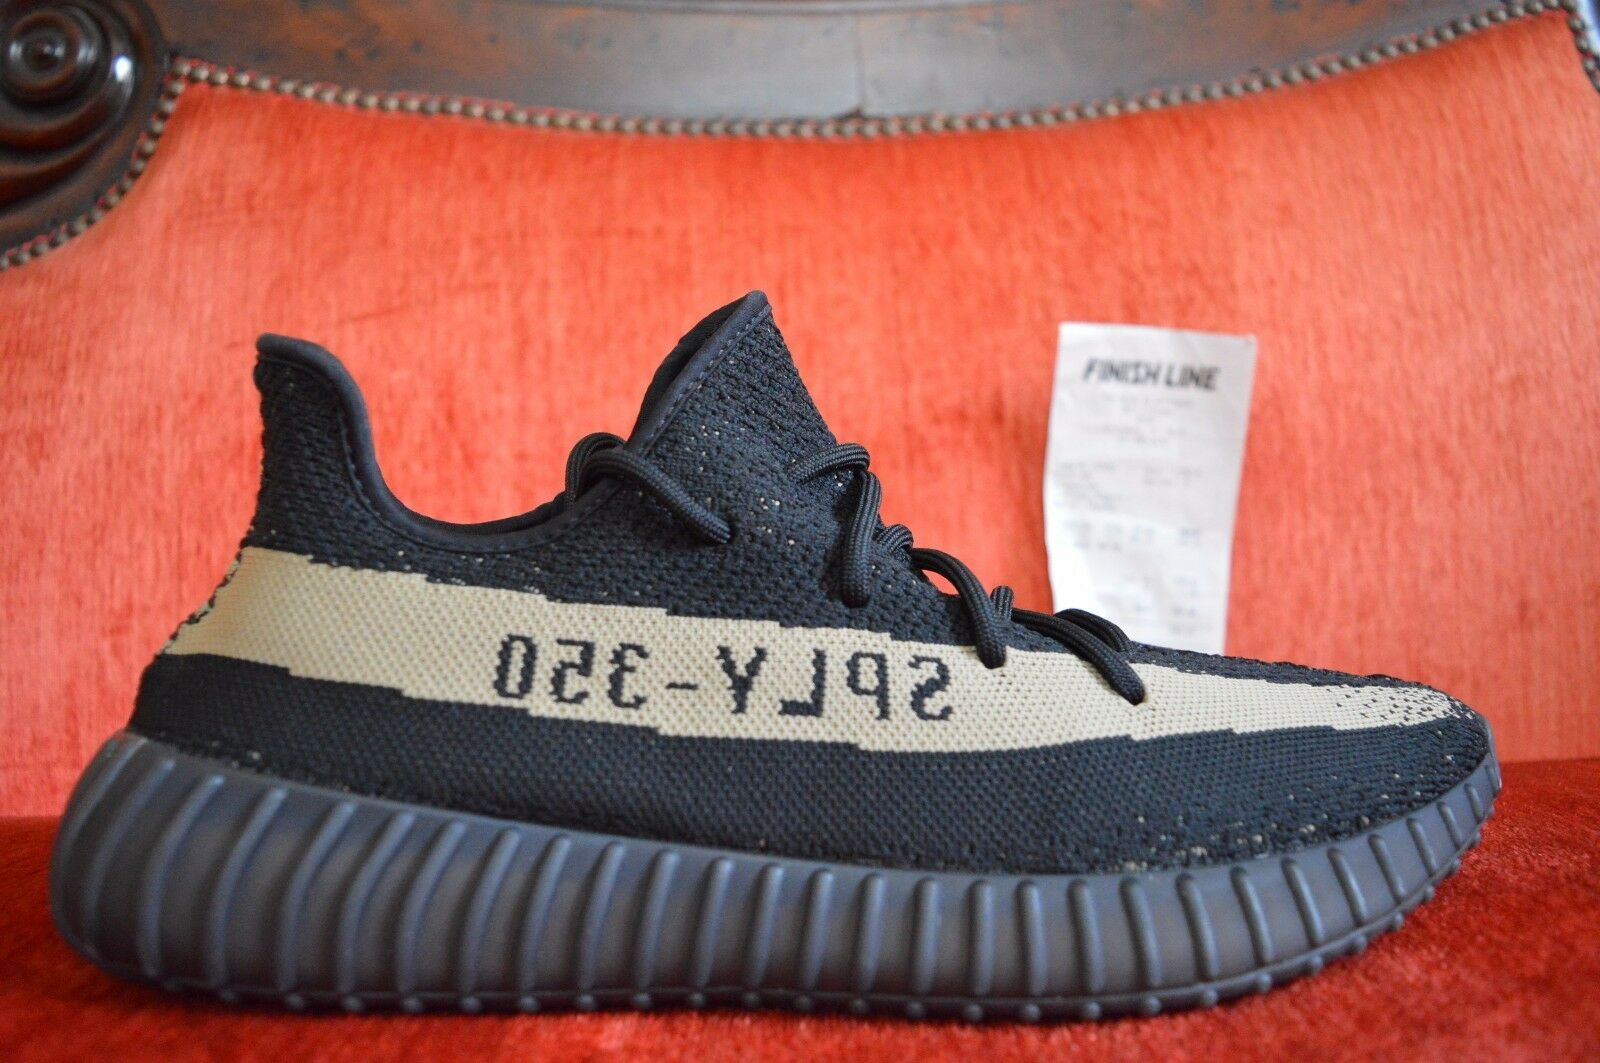 hot sale online 079a8 dcfc6 adidas Yeezy 350 V2 Boost SPLY Kanye West Black Green Olive BY9611 Size 13